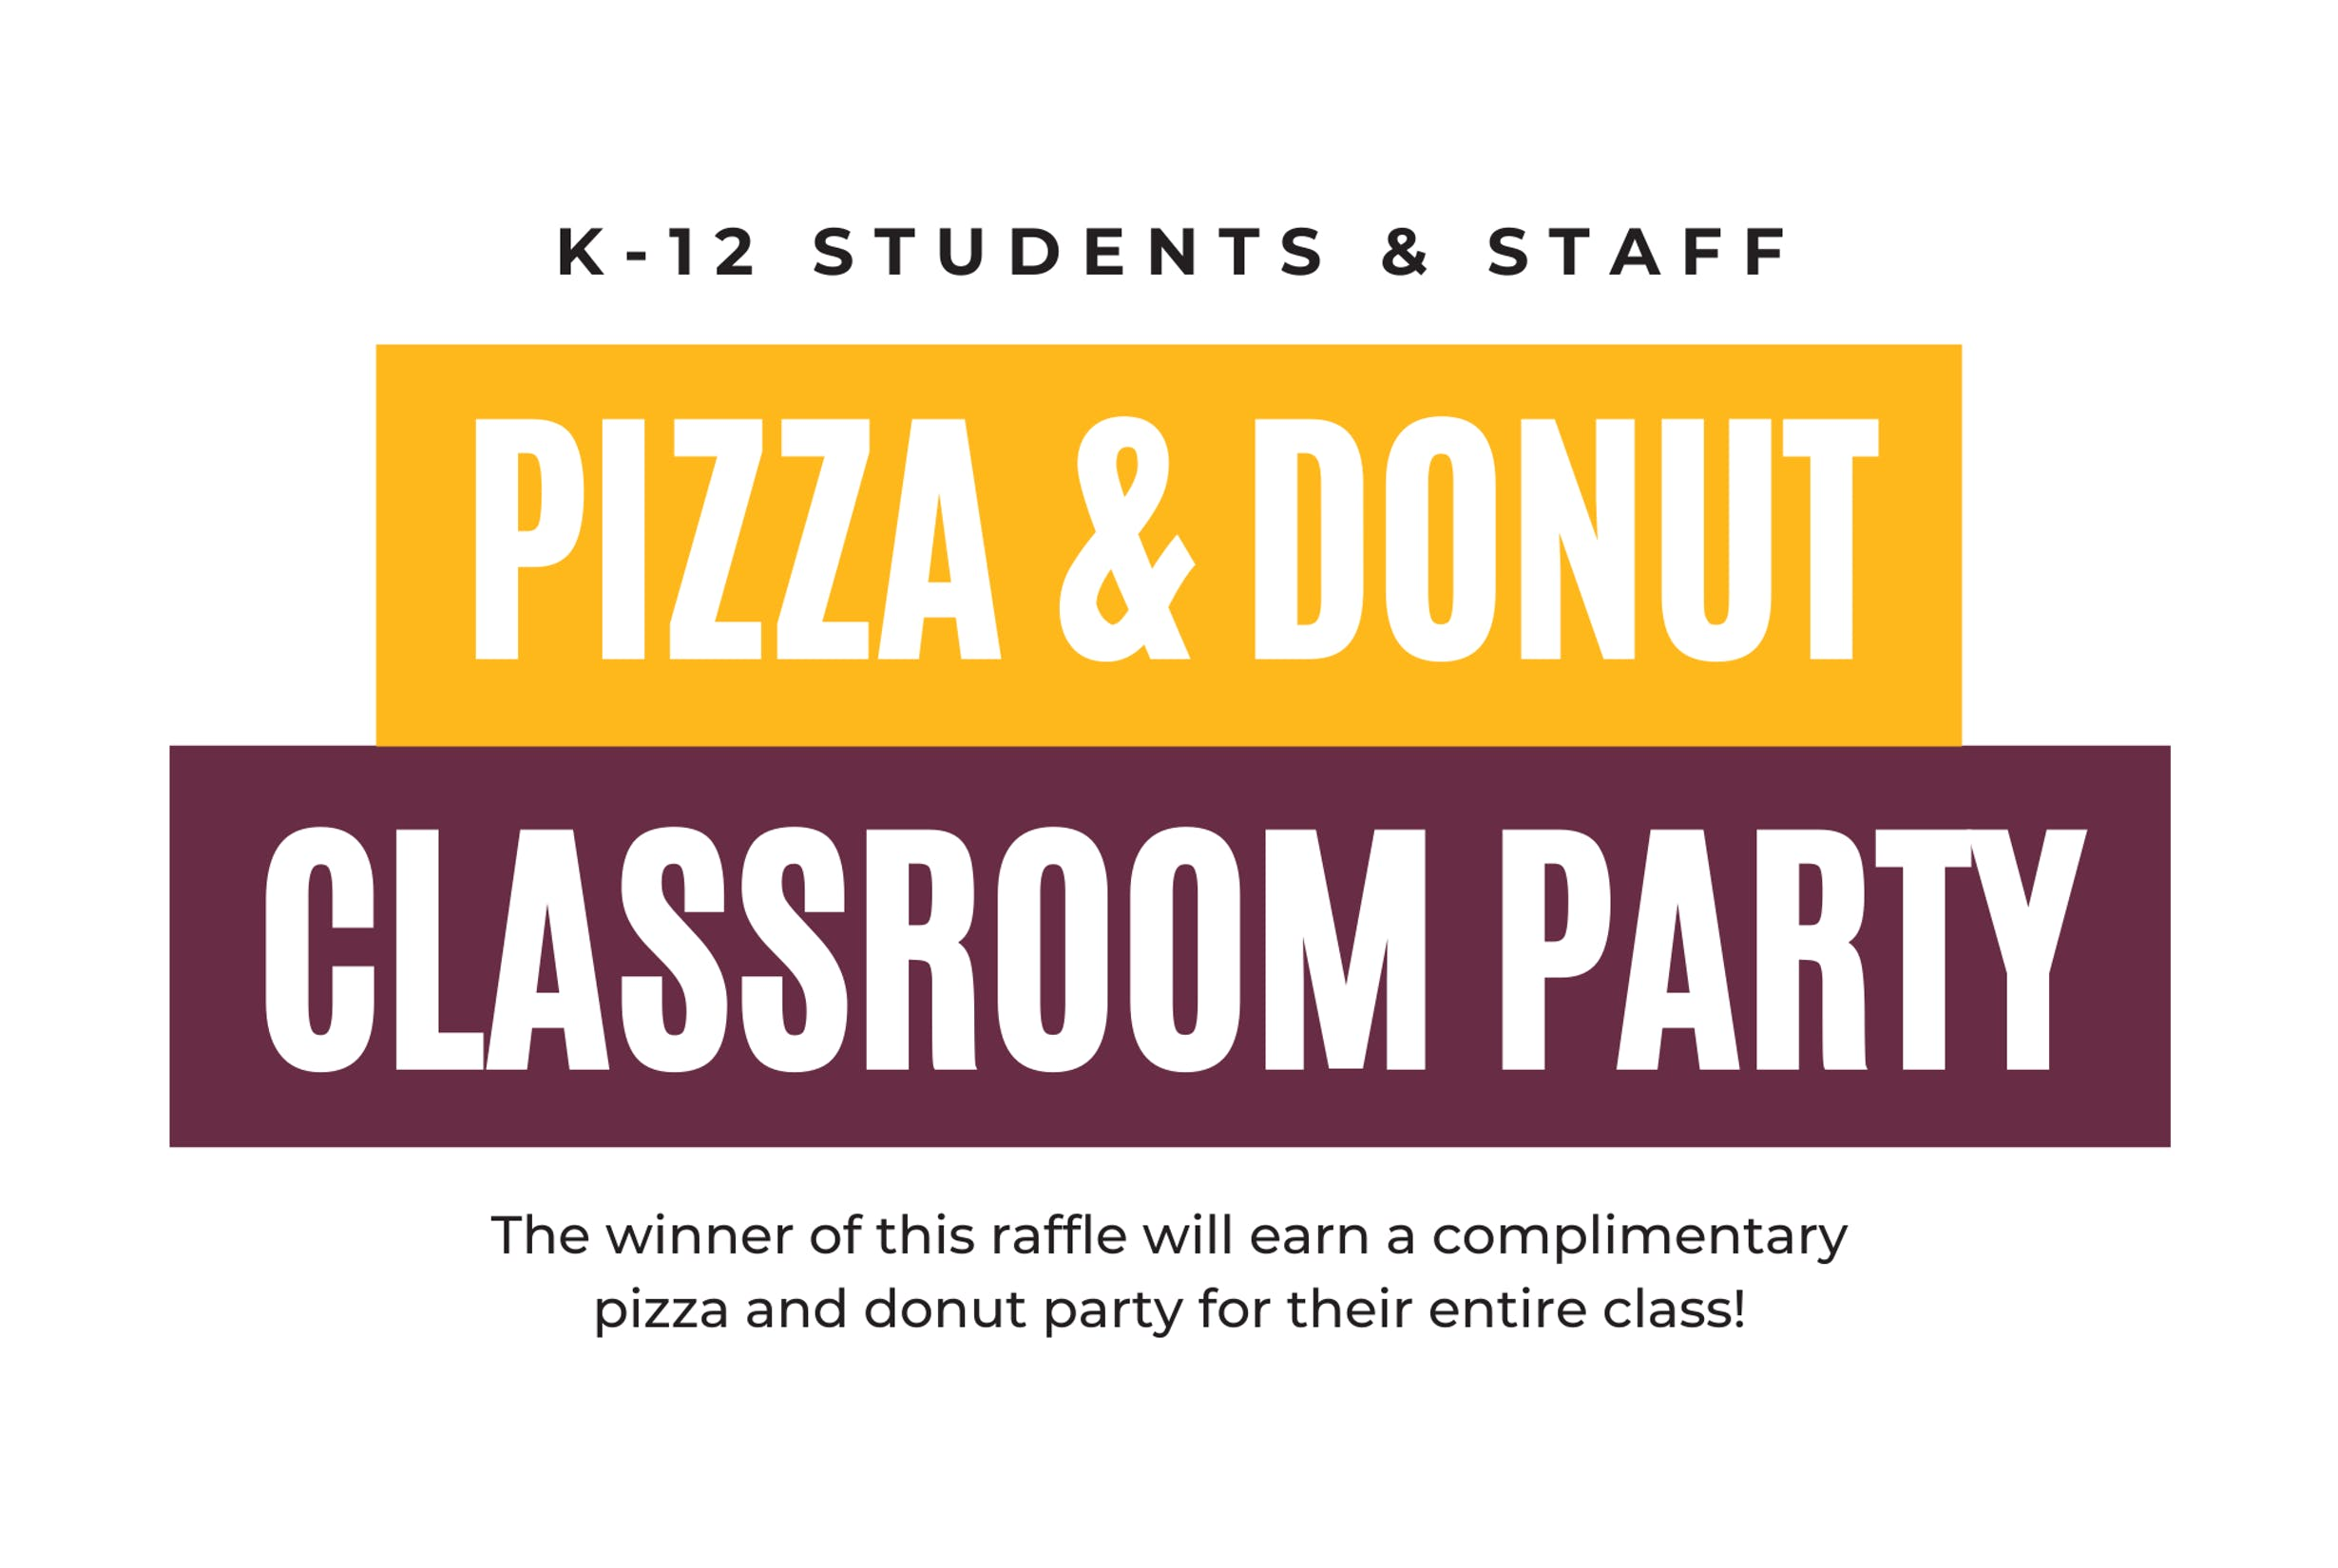 Pizza and Donut Classroom Party Prize